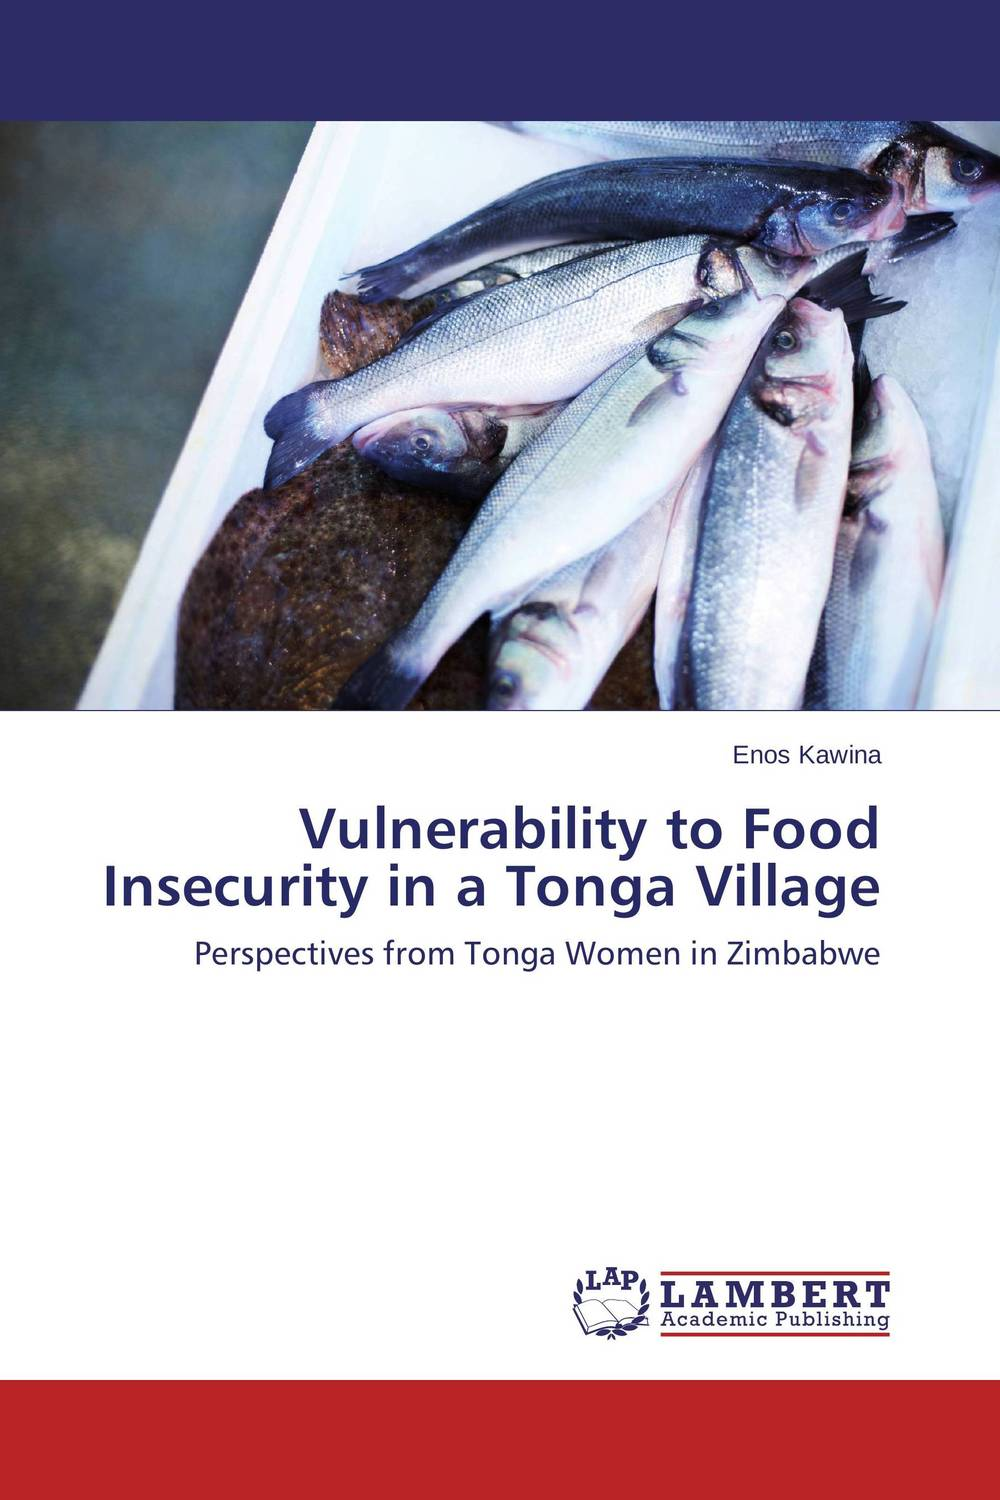 Vulnerability to Food Insecurity in a Tonga Village